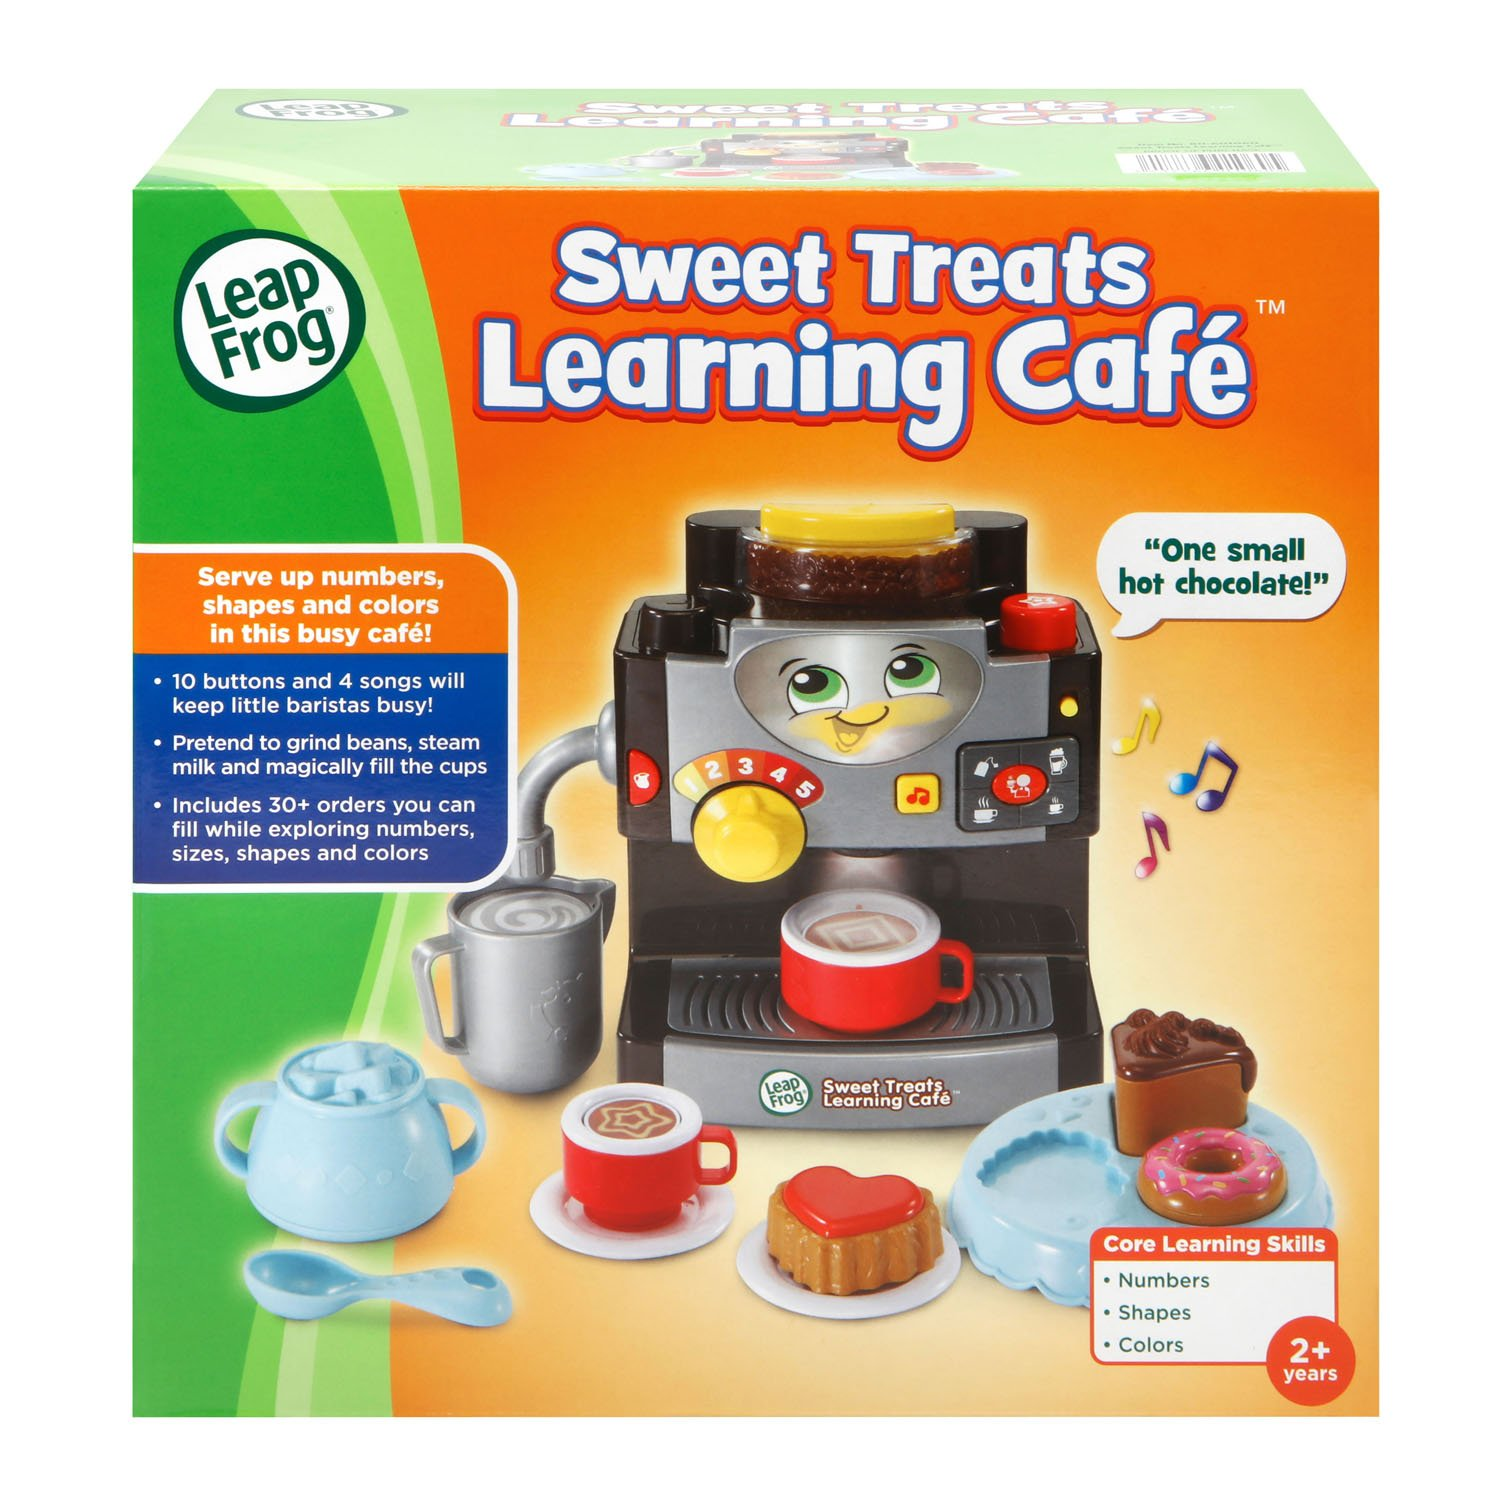 LeapFrog Sweet Treats Learning Café Amazon Exclusive, Black by LeapFrog (Image #7)